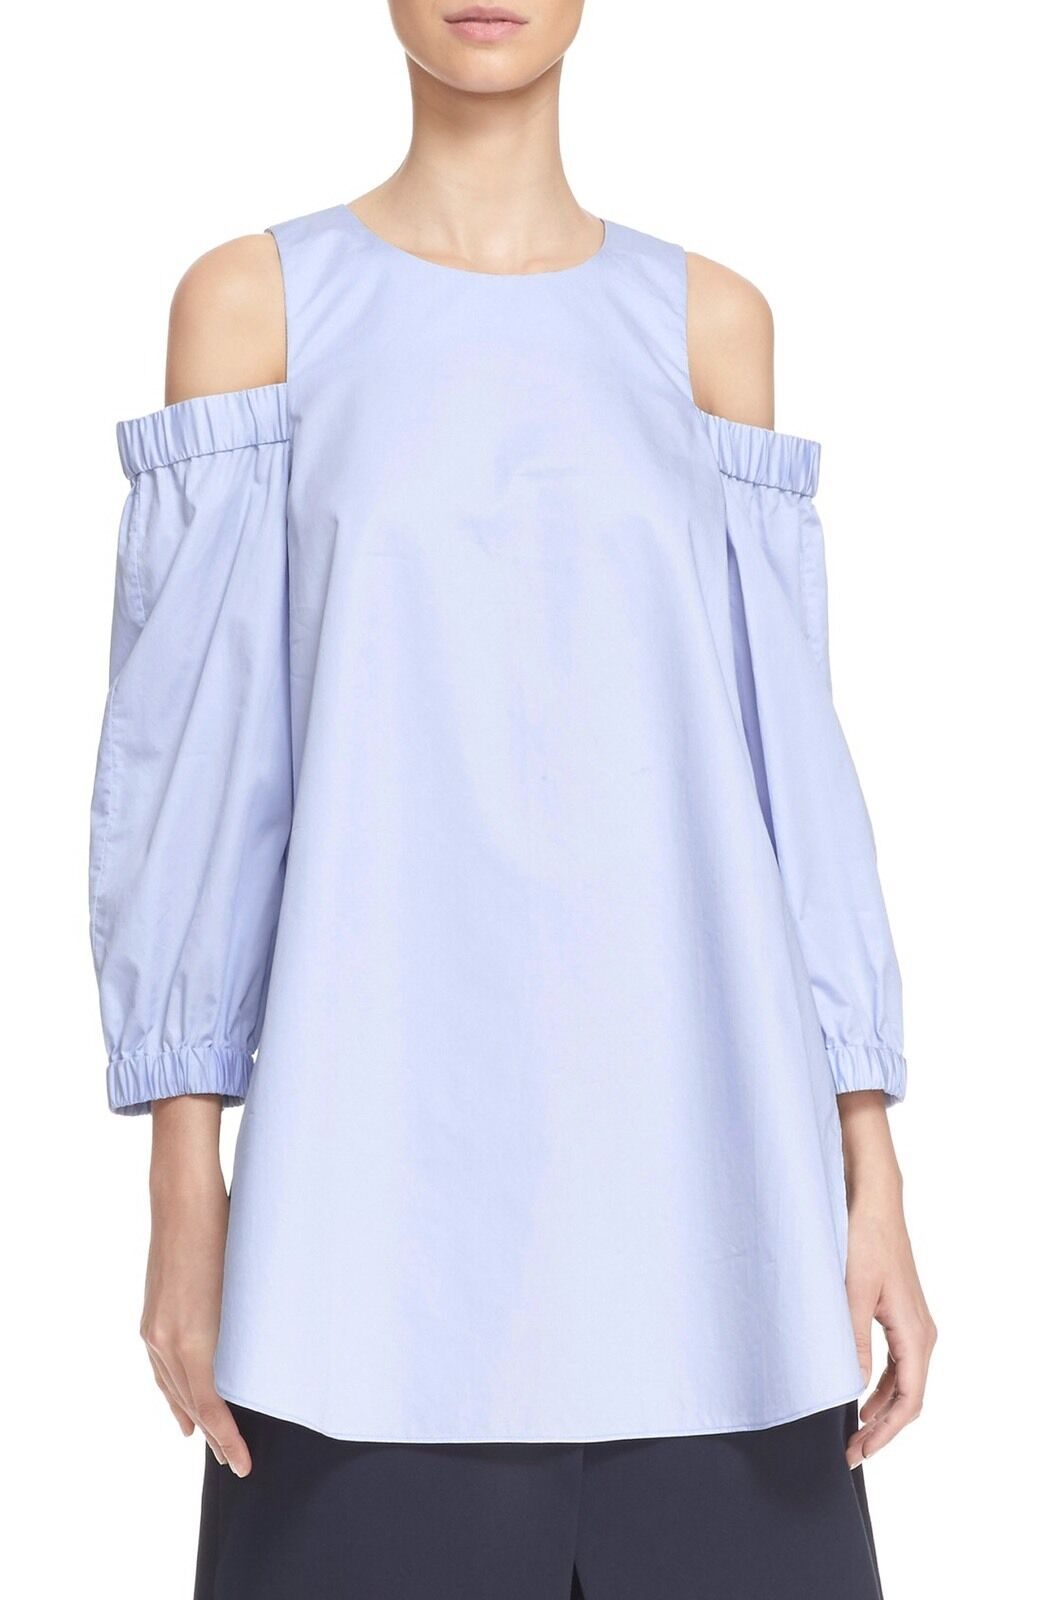 TIBI Blau Cotton Satin Poplin Cold Shoulder Tunic Top Shirt S Small Soldout 295